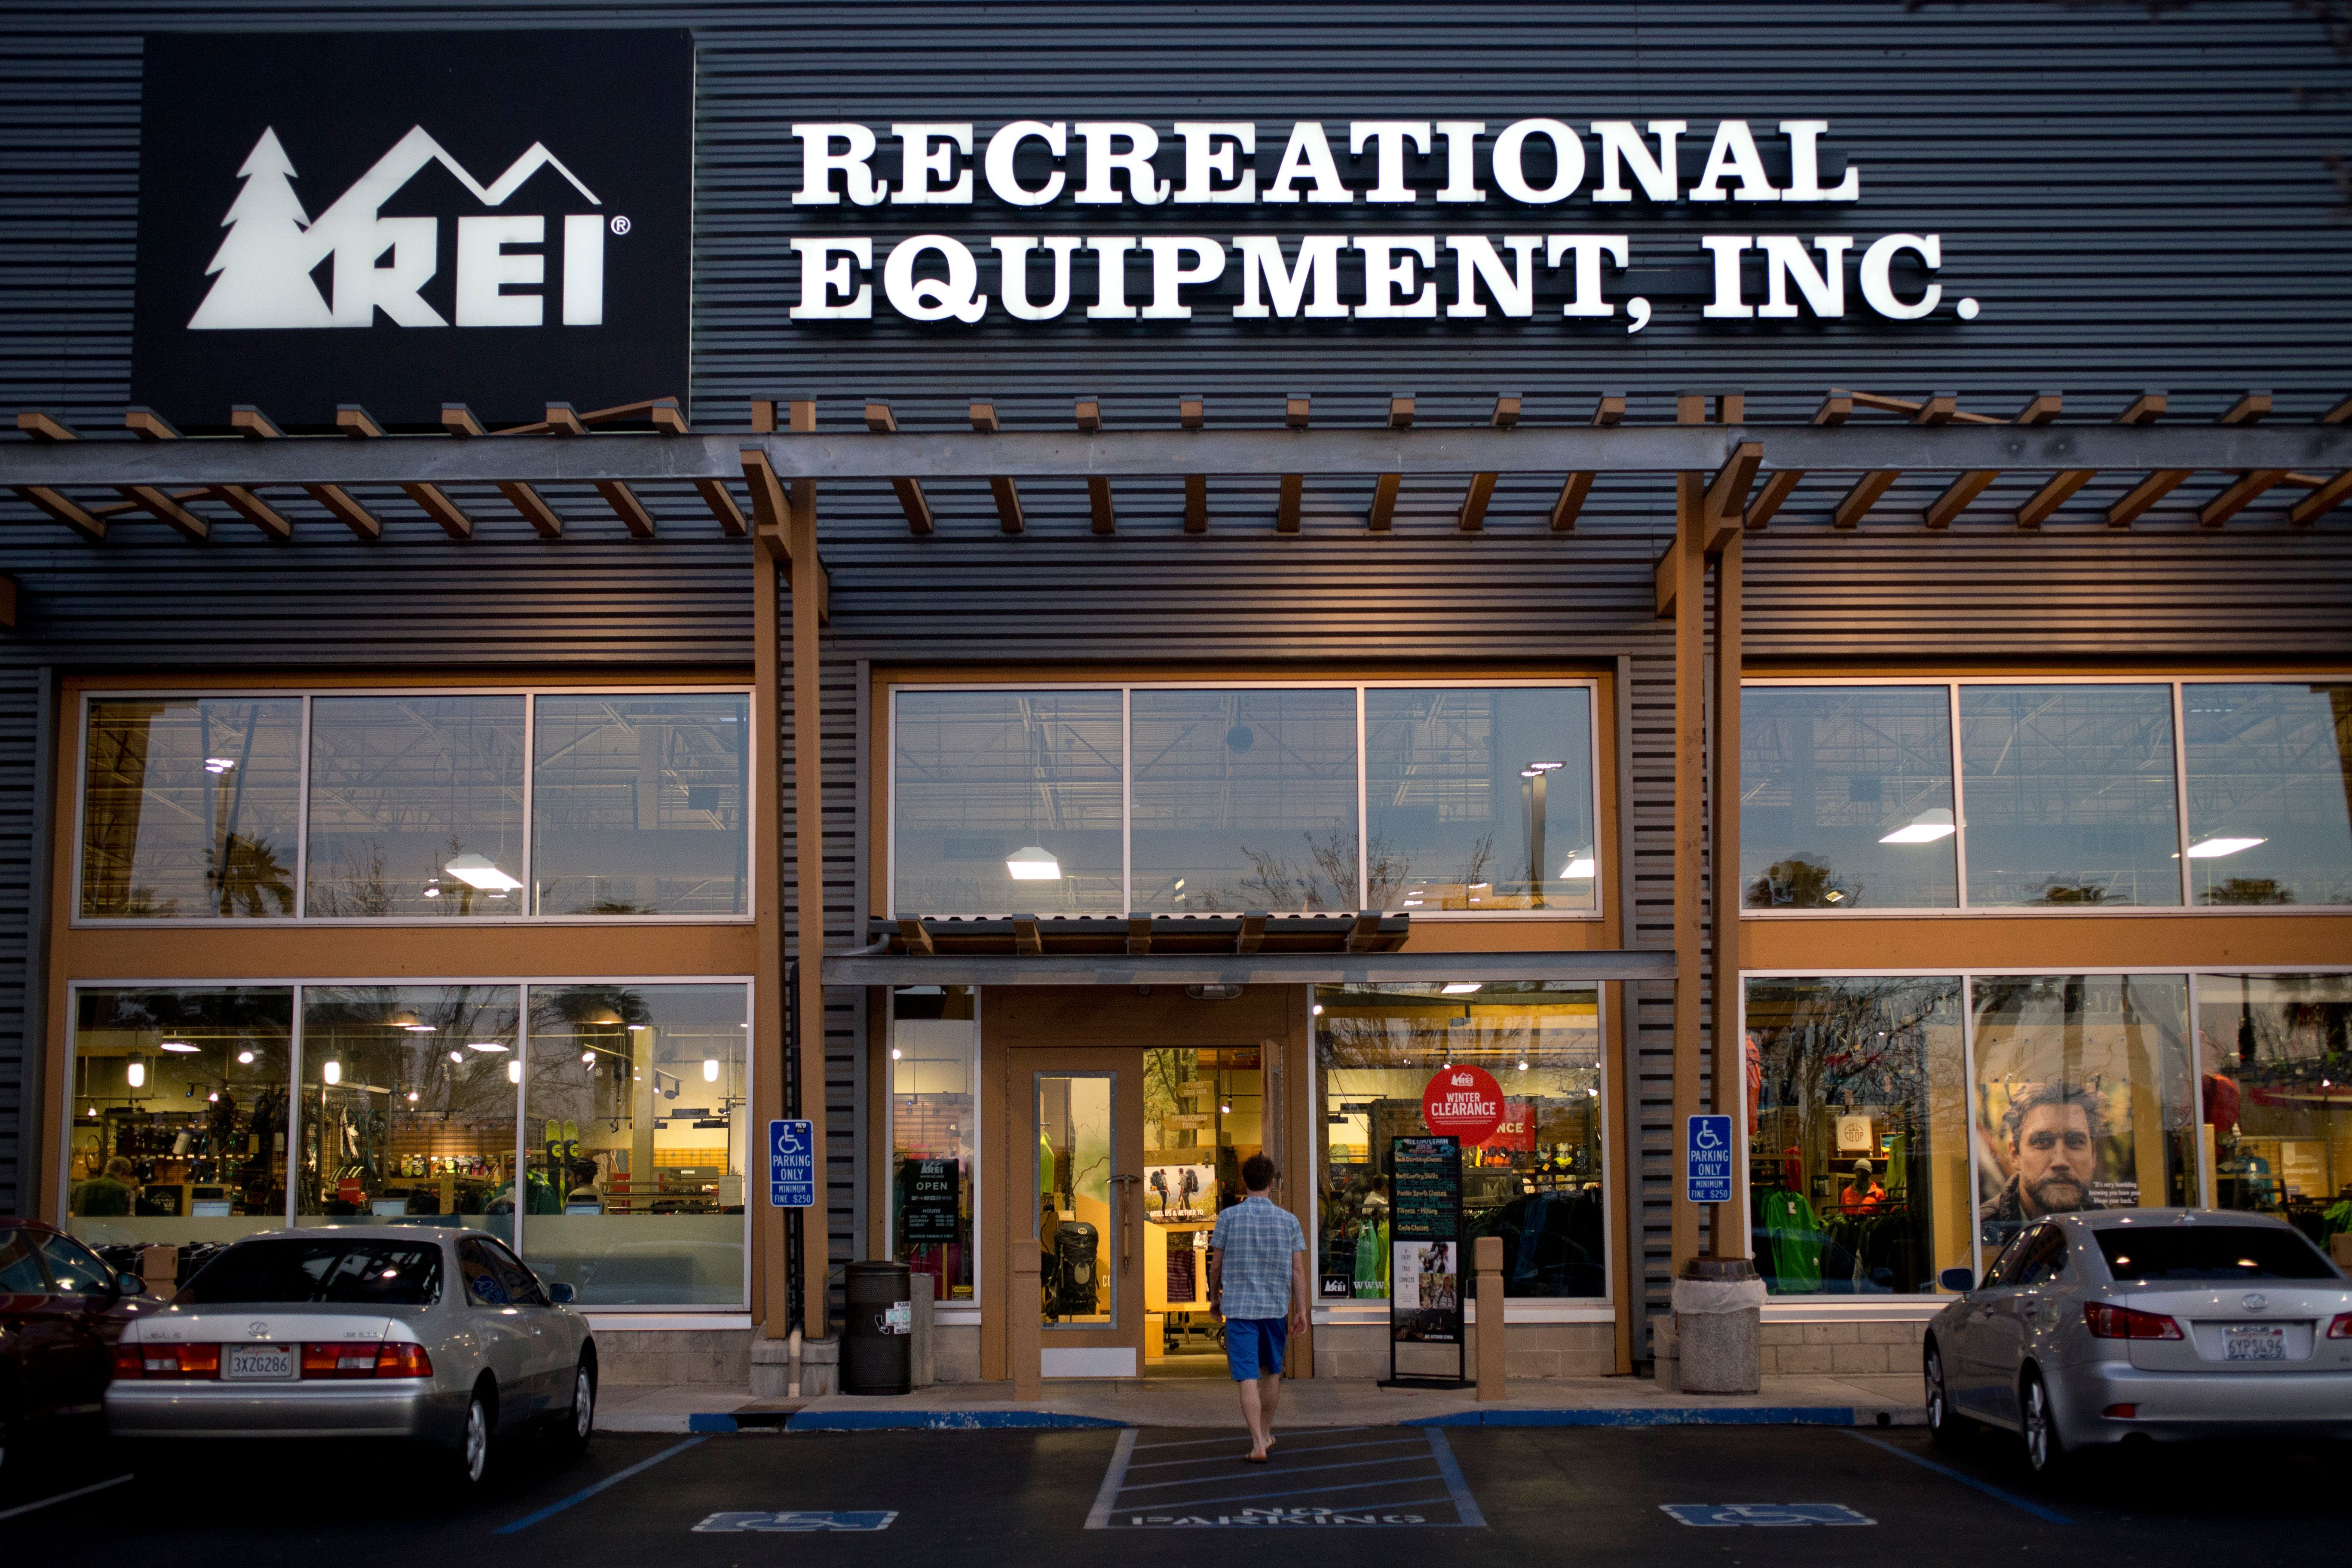 REI said it would suspend its relationship with Vista Outdoor, a conglomerate that owns several popular adventure brands but